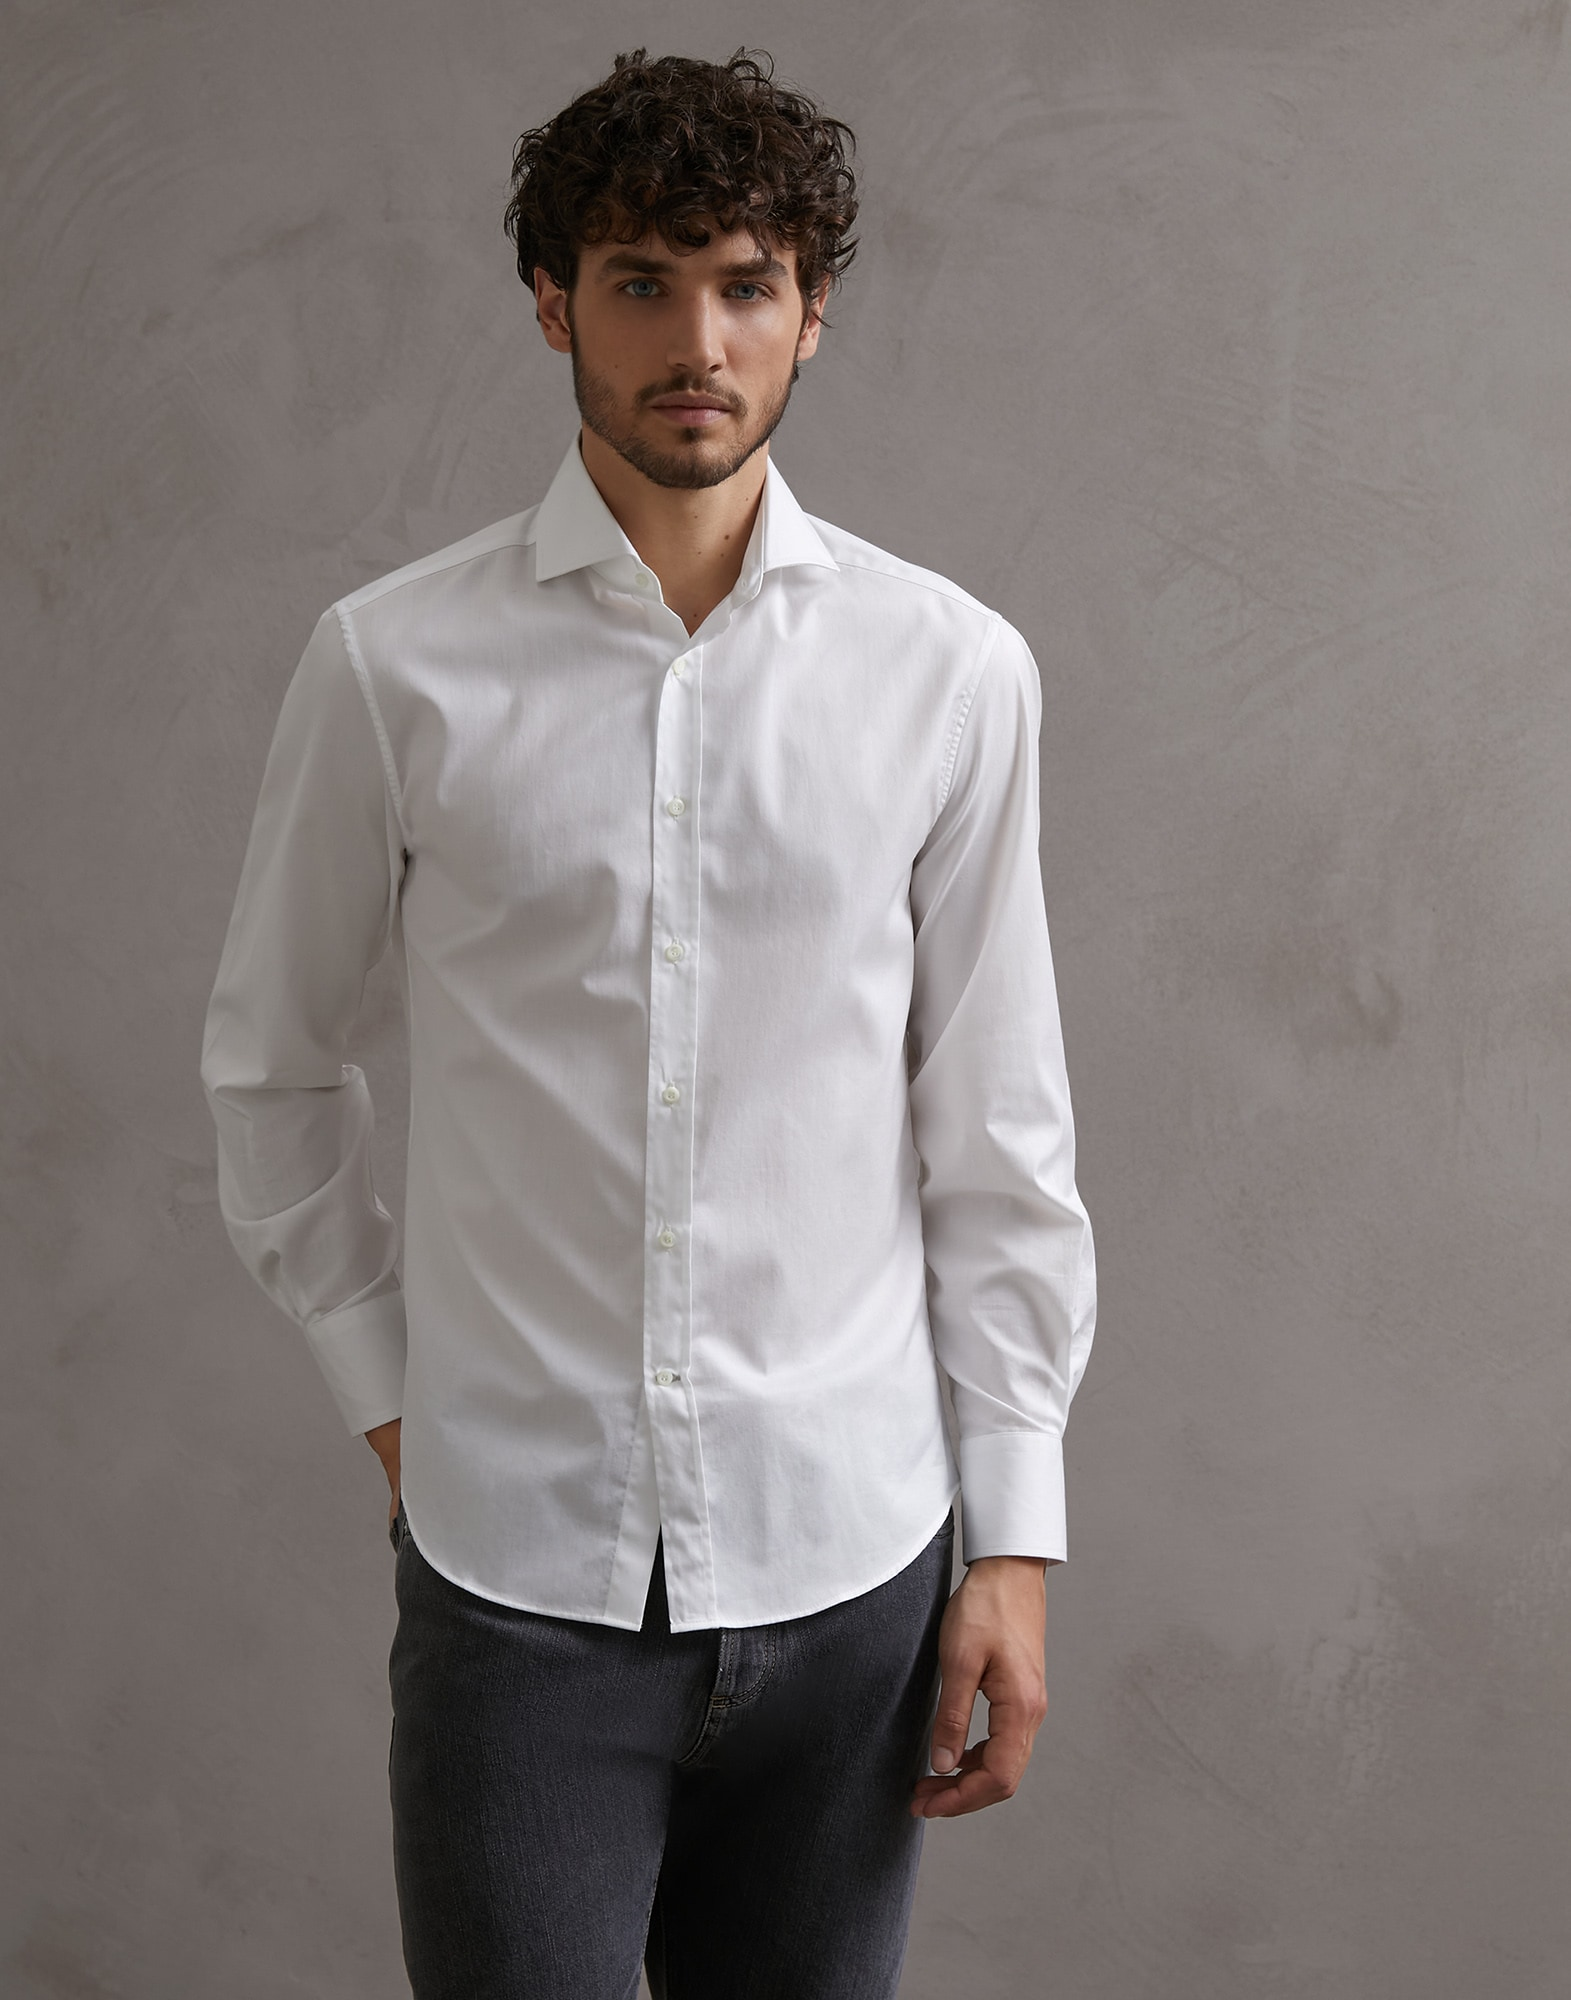 French Collar Shirt - Front view